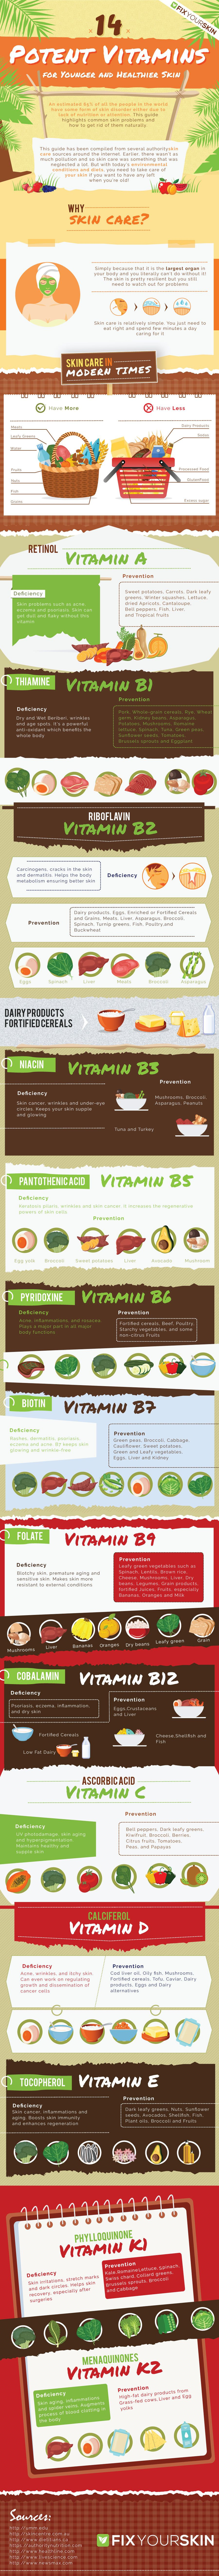 Importance of Vitamins for Skin